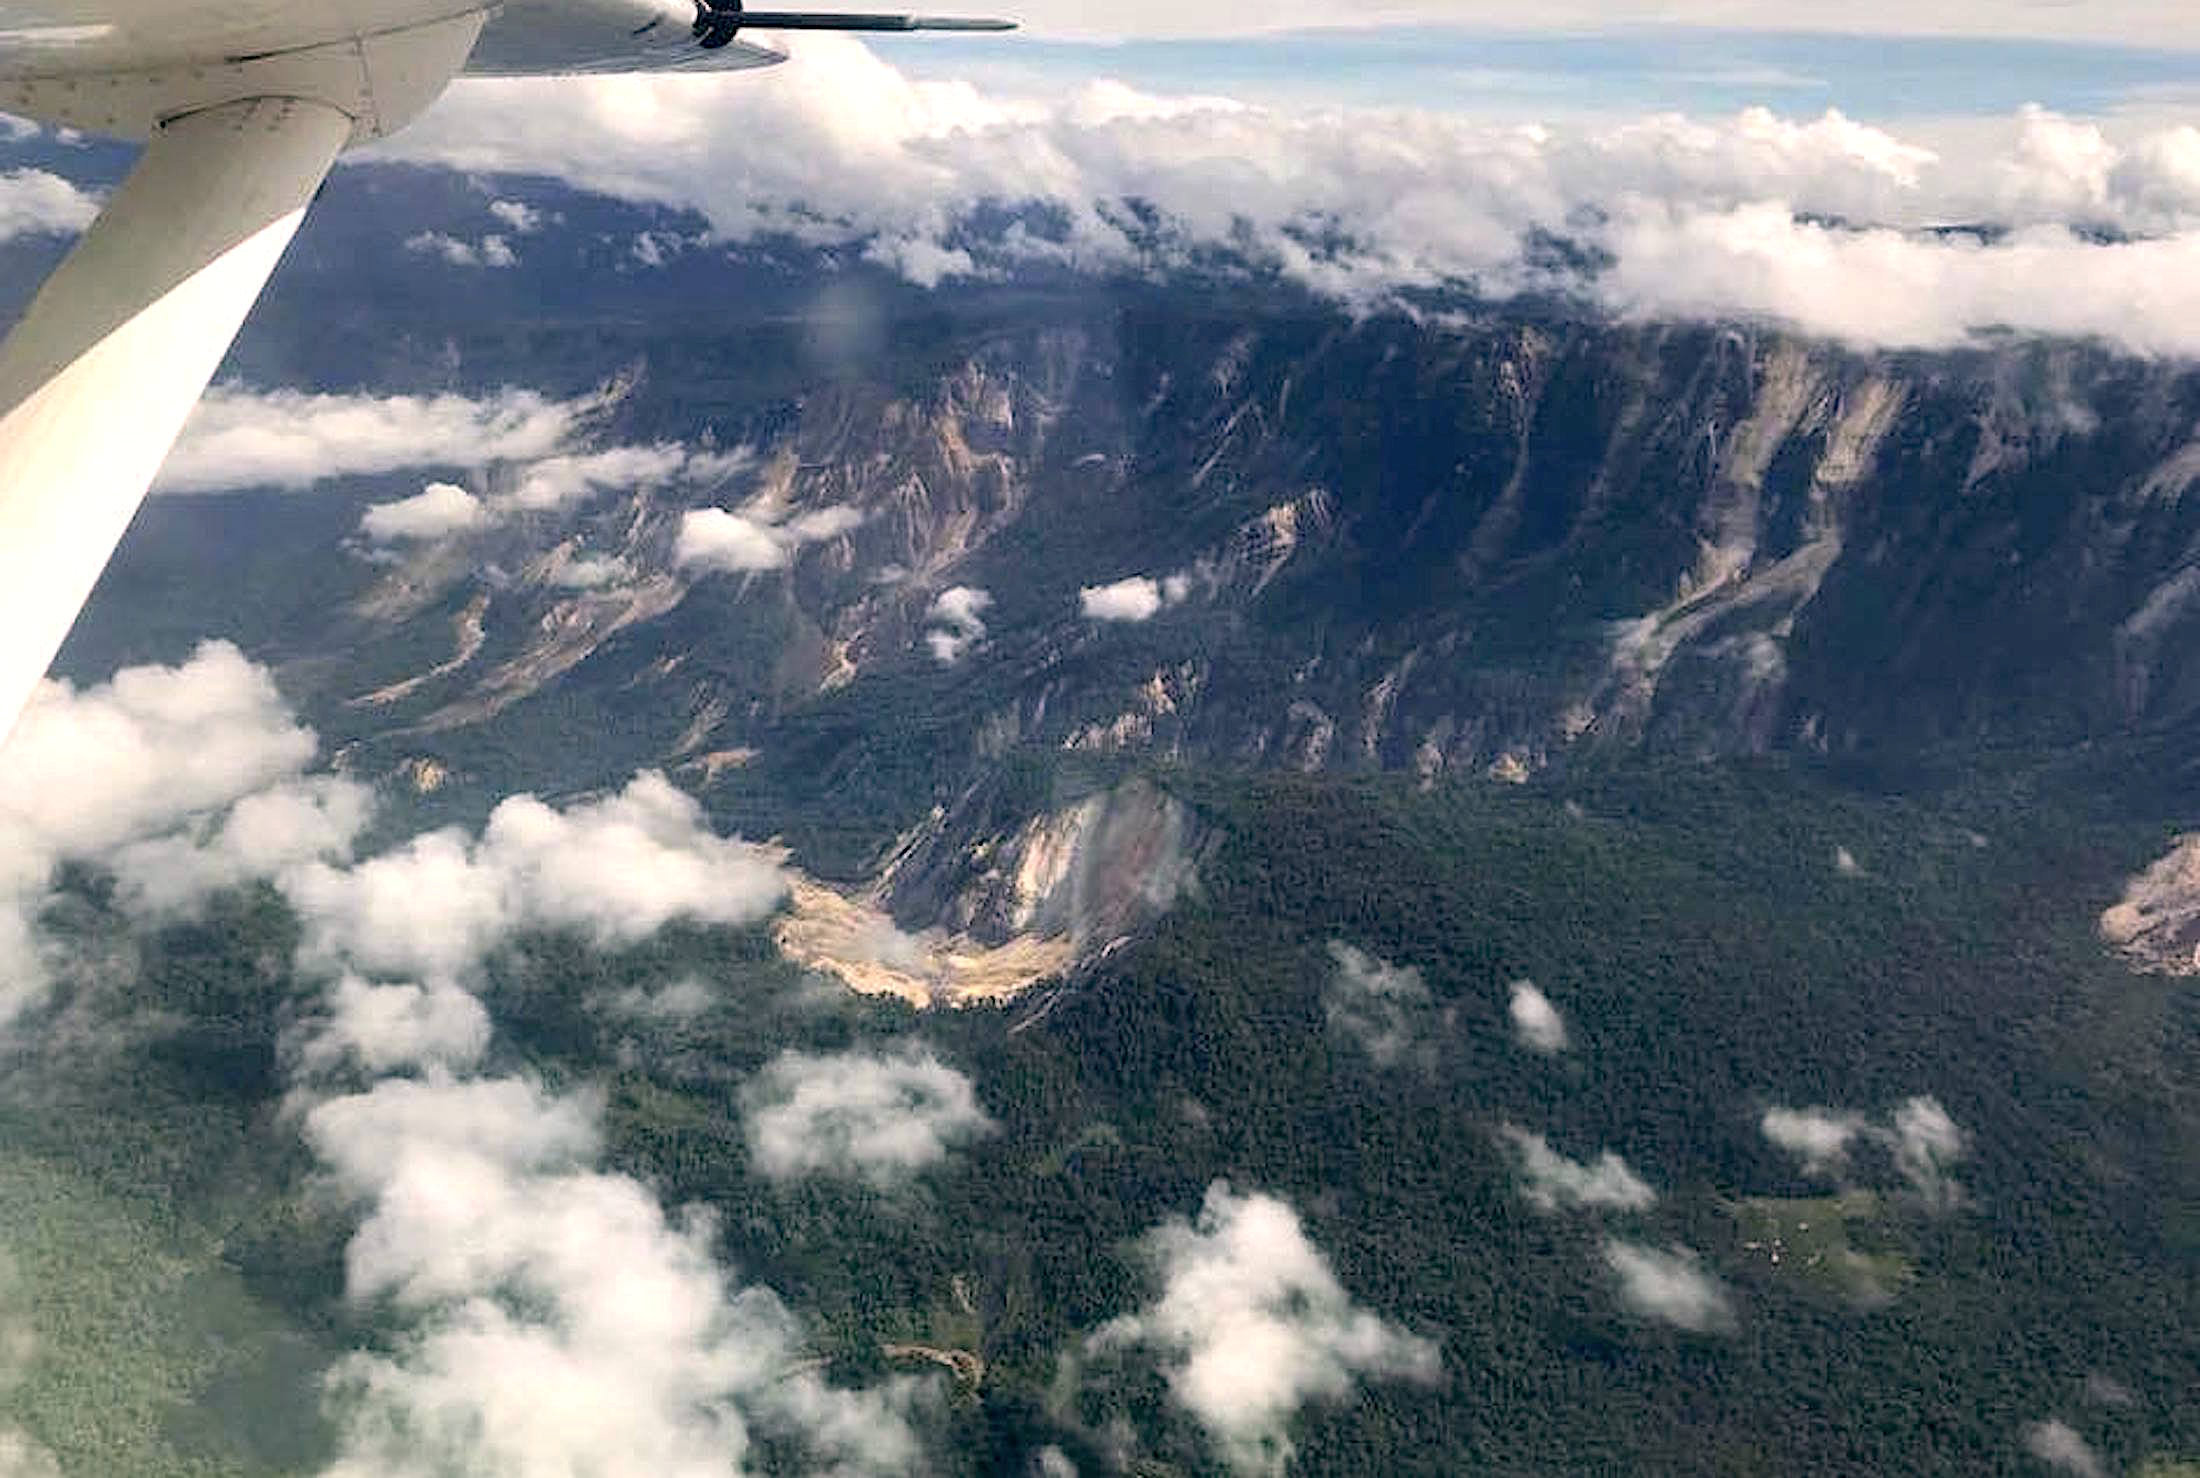 A handout photo shows several landslides on mountains in the Muller range after an earthquake struck Papua New Guinea's Southern Highlands February 26, 2018. Picture taken February 26, 2018. Steve Eatwell-Mission Aviation Fellowship/Handout via REUTERS